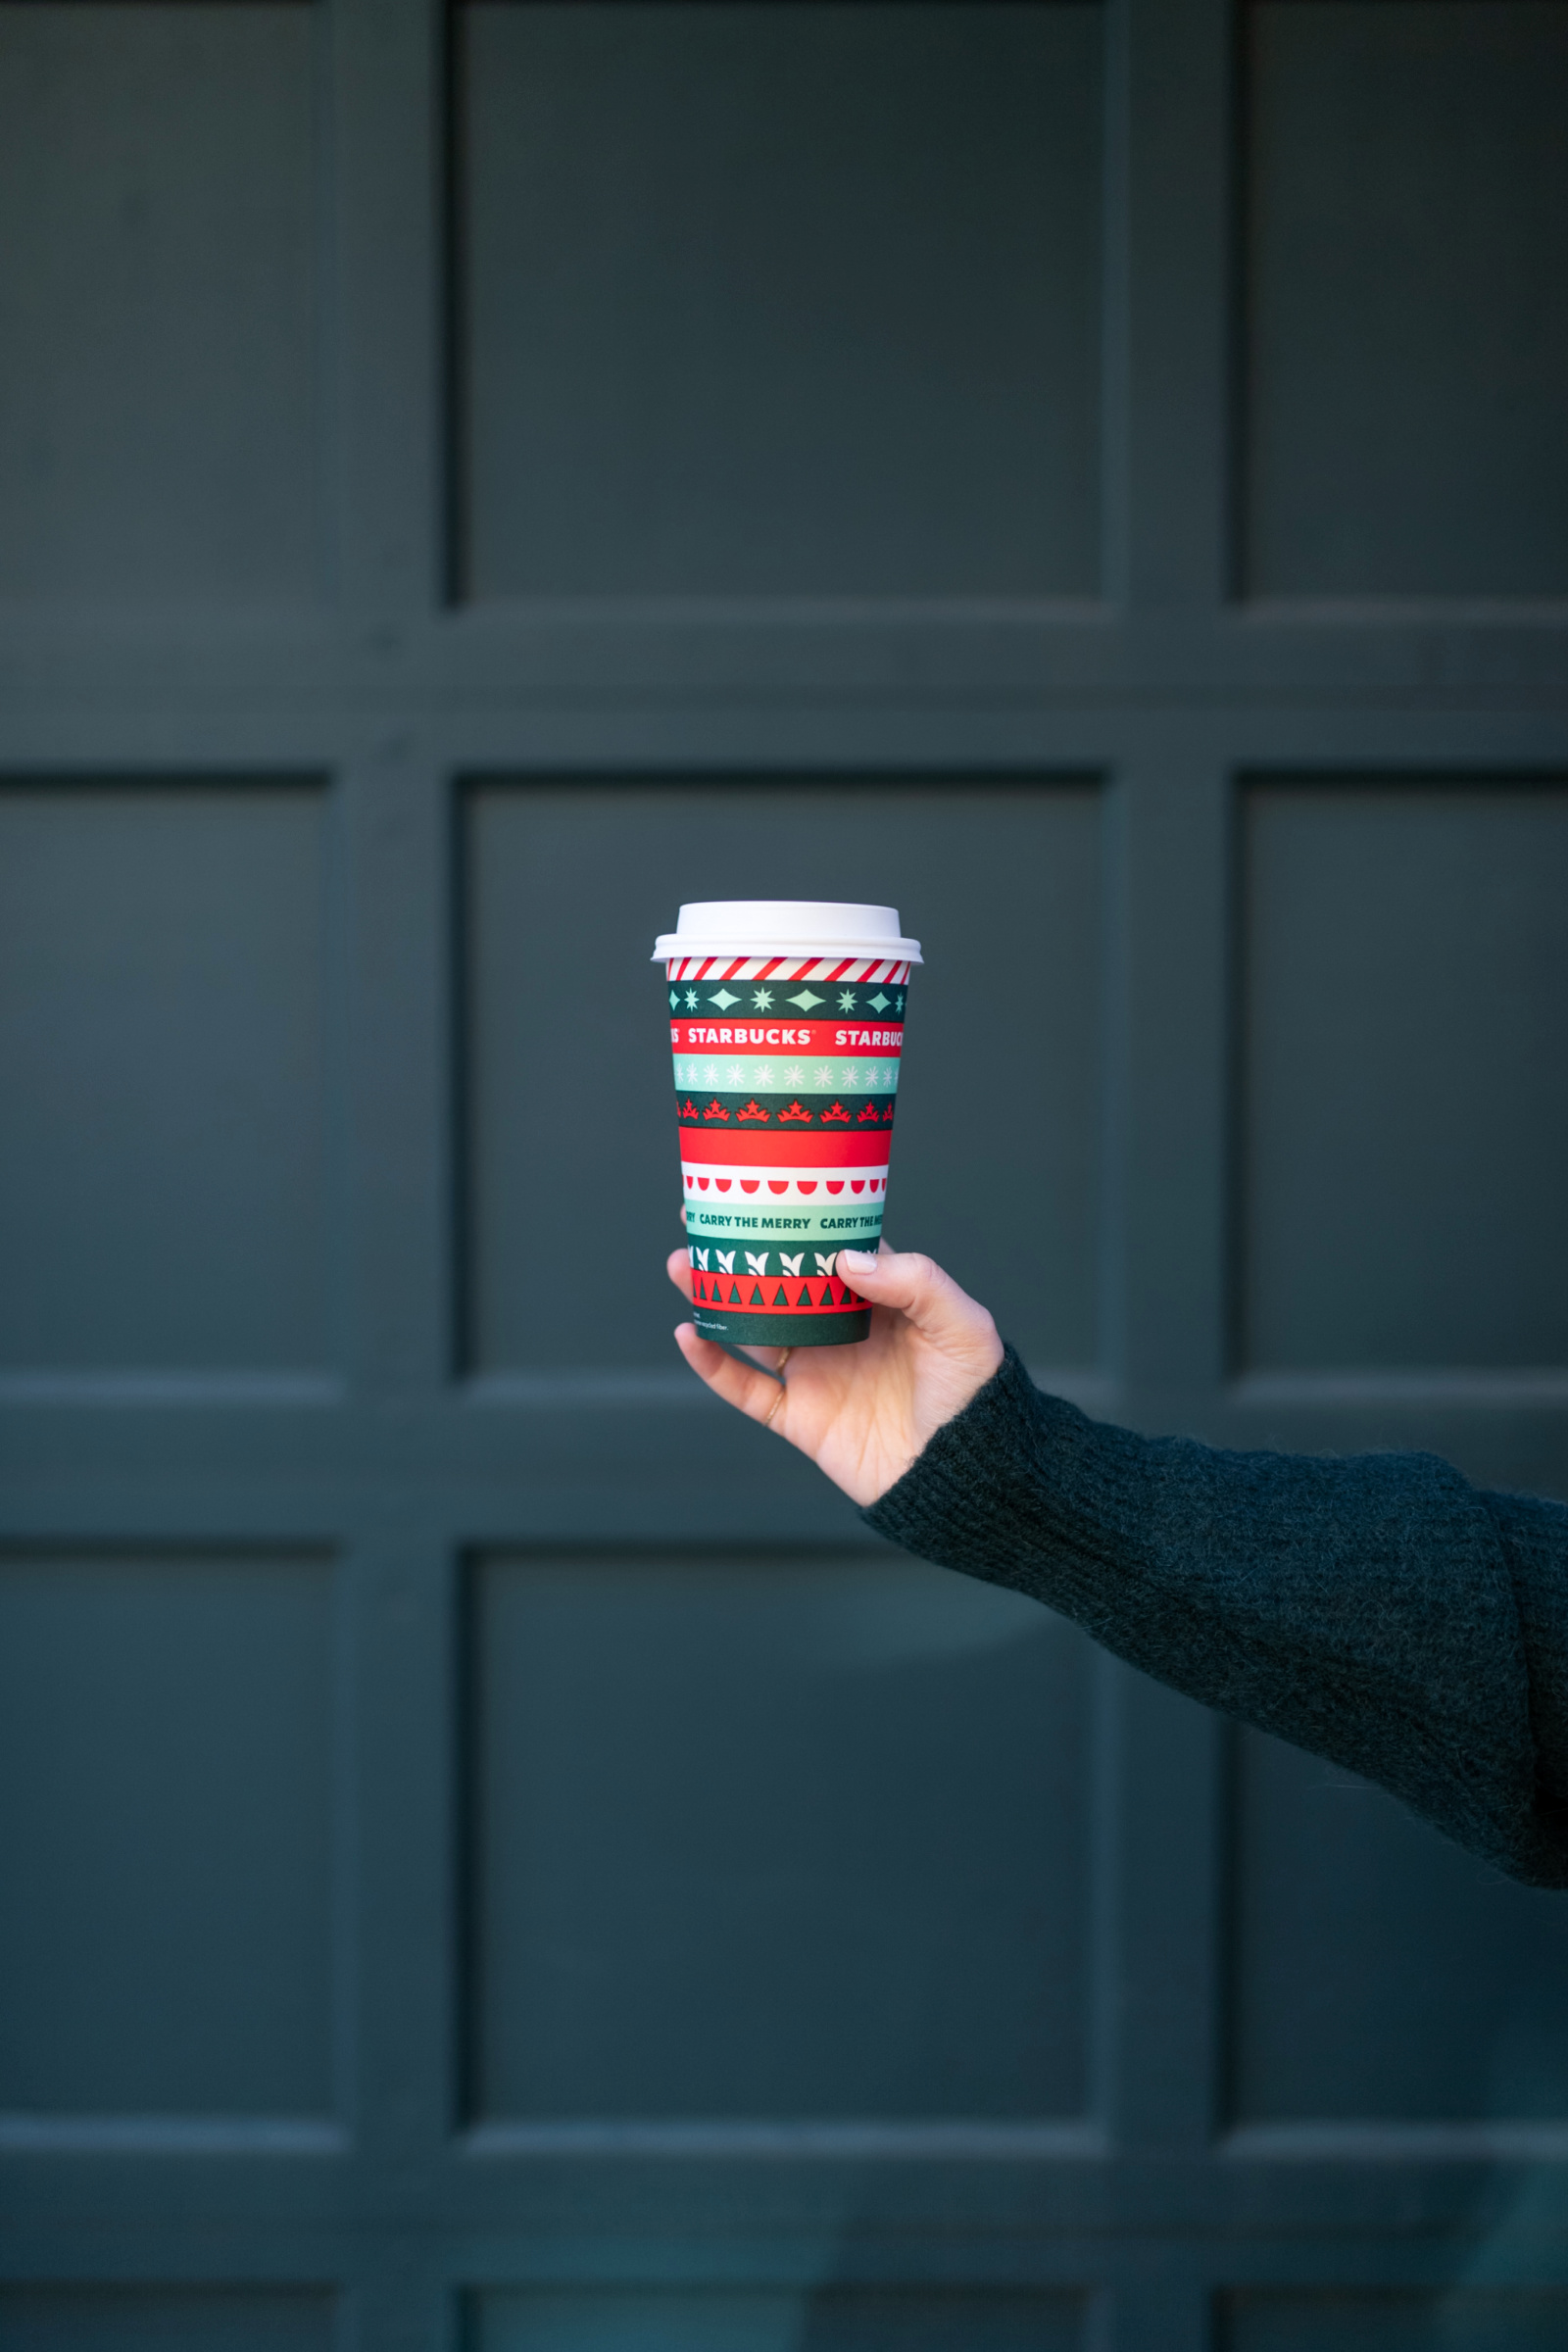 Starbucks Holiday Cup I wit & whimsy